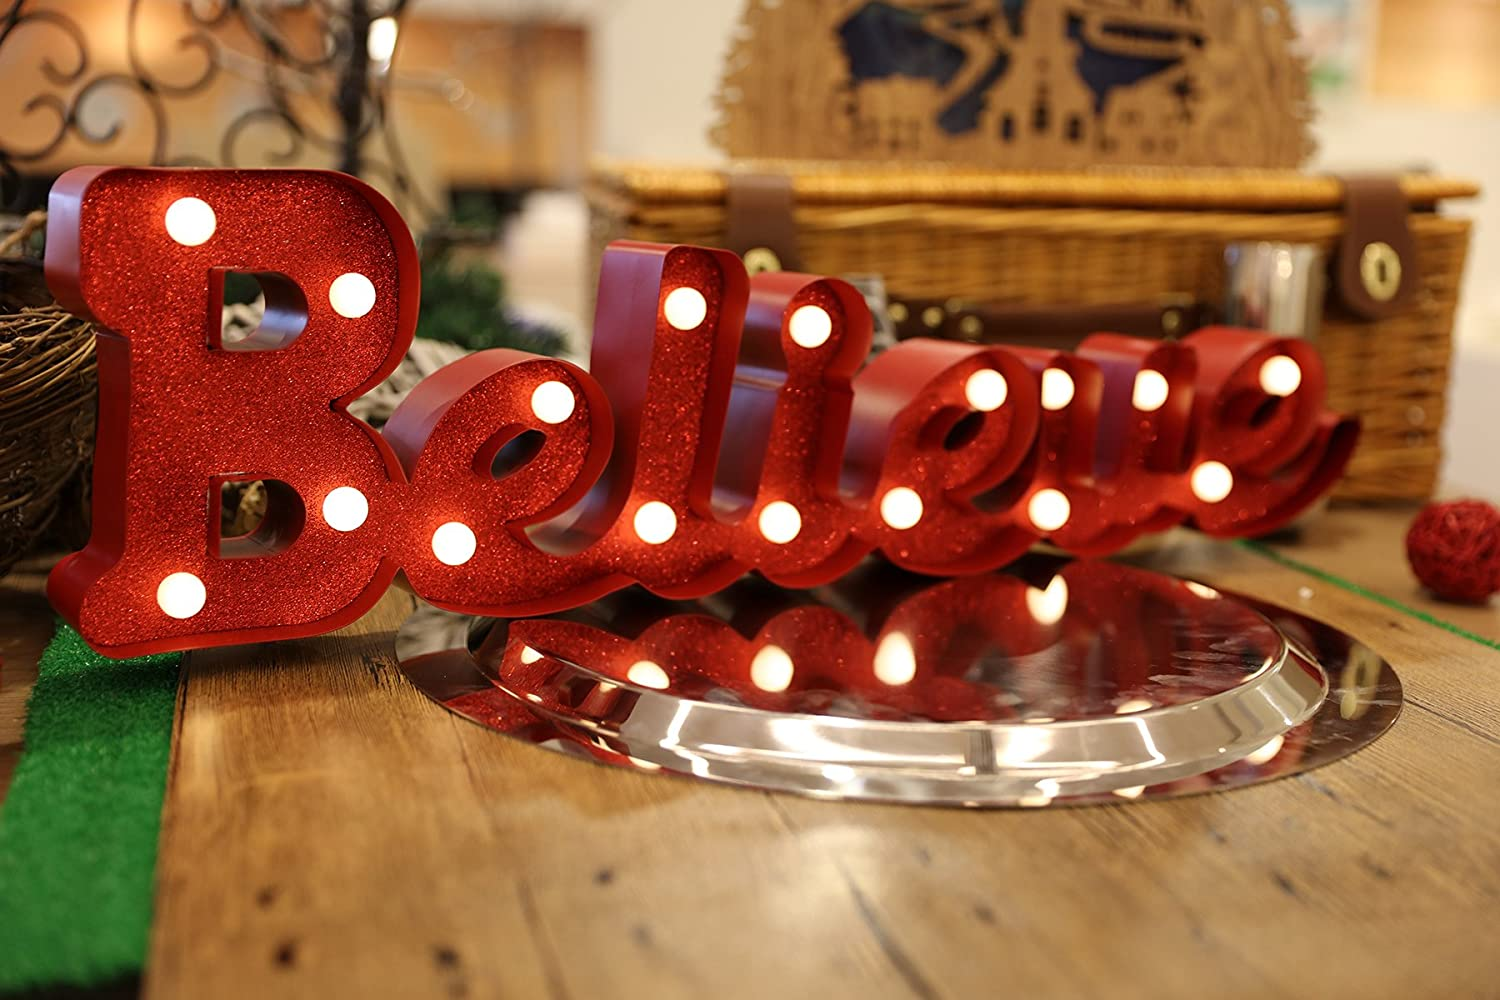 Christmas Festival LED Light Marquee Sign Battery Operated Table Desk Ornament Decoration Believe